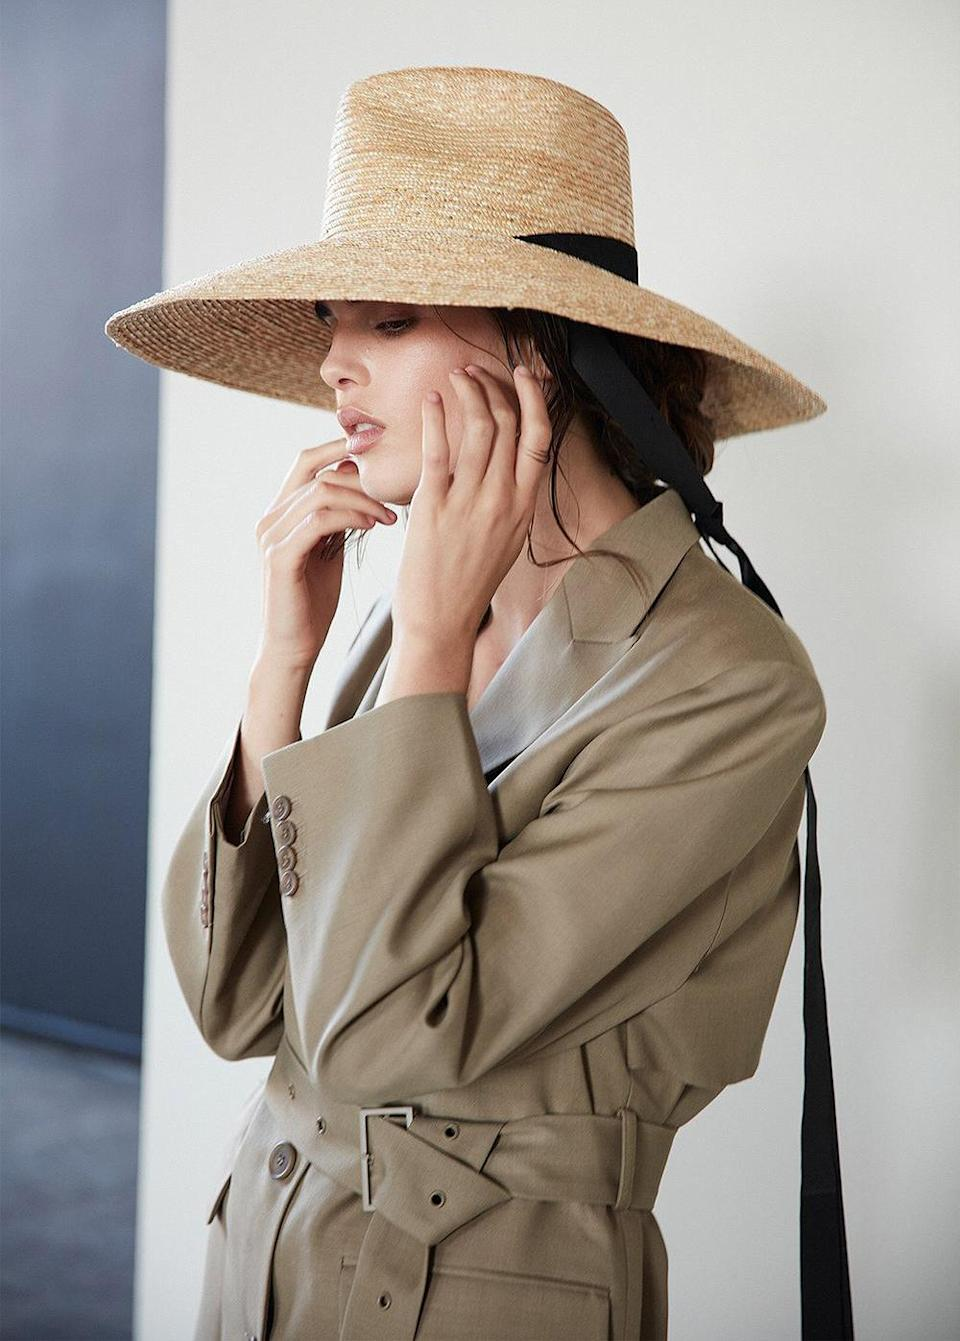 """<p>With kids running around, your own sunscreen application is easily forgotten on a summer day outdoors. Take a cue from Meghan, who loves oversized straw hats for sun protection (even when <a href=""""https://people.com/royals/meghan-markle-gloria-steinem-praise-prince-harry-feminist-father-archie/"""" rel=""""nofollow noopener"""" target=""""_blank"""" data-ylk=""""slk:speaking with Gloria Steinem"""" class=""""link rapid-noclick-resp"""">speaking with Gloria Steinem</a>!).</p> <p><strong>Buy It! Janessa Leone Serena hat, <a href=""""https://janessaleone.com/products/serena"""" rel=""""sponsored noopener"""" target=""""_blank"""" data-ylk=""""slk:$356"""" class=""""link rapid-noclick-resp"""">$356</a></strong></p> <p><strong>Get the Look!</strong><strong><br>Will and Bear River Sand, <a href=""""https://willandbear.com/collections/all/products/river-sand"""" rel=""""sponsored noopener"""" target=""""_blank"""" data-ylk=""""slk:$119"""" class=""""link rapid-noclick-resp"""">$119</a><br>Gigi Pip Camilla Fedora, <a href=""""https://click.linksynergy.com/deeplink?id=93xLBvPhAeE&mid=45070&murl=https%3A%2F%2Fwww.gigipip.com%2Fcollections%2Fstraw-hats-for-women%2Fproducts%2Fcamila-natural-straw-fedora-with-flat-brim&u1=PEO18RegalMothersDayGiftsInspiredbyRealLifeRoyalMomspetitsRoyGal12686606202105I"""" rel=""""sponsored noopener"""" target=""""_blank"""" data-ylk=""""slk:$84"""" class=""""link rapid-noclick-resp"""">$84</a><br></strong><strong>Asos Straw Boater, <a href=""""https://click.linksynergy.com/deeplink?id=93xLBvPhAeE&mid=35719&murl=https%3A%2F%2Fwww.asos.com%2Fus%2Fasos-design%2Fasos-design-two-tone-natural-straw-boater-with-undertie-and-size-adjuster%2Fprd%2F22277802&u1=PEO18RegalMothersDayGiftsInspiredbyRealLifeRoyalMomspetitsRoyGal12686606202105I"""" rel=""""sponsored noopener"""" target=""""_blank"""" data-ylk=""""slk:$23"""" class=""""link rapid-noclick-resp"""">$23</a></strong></p>"""